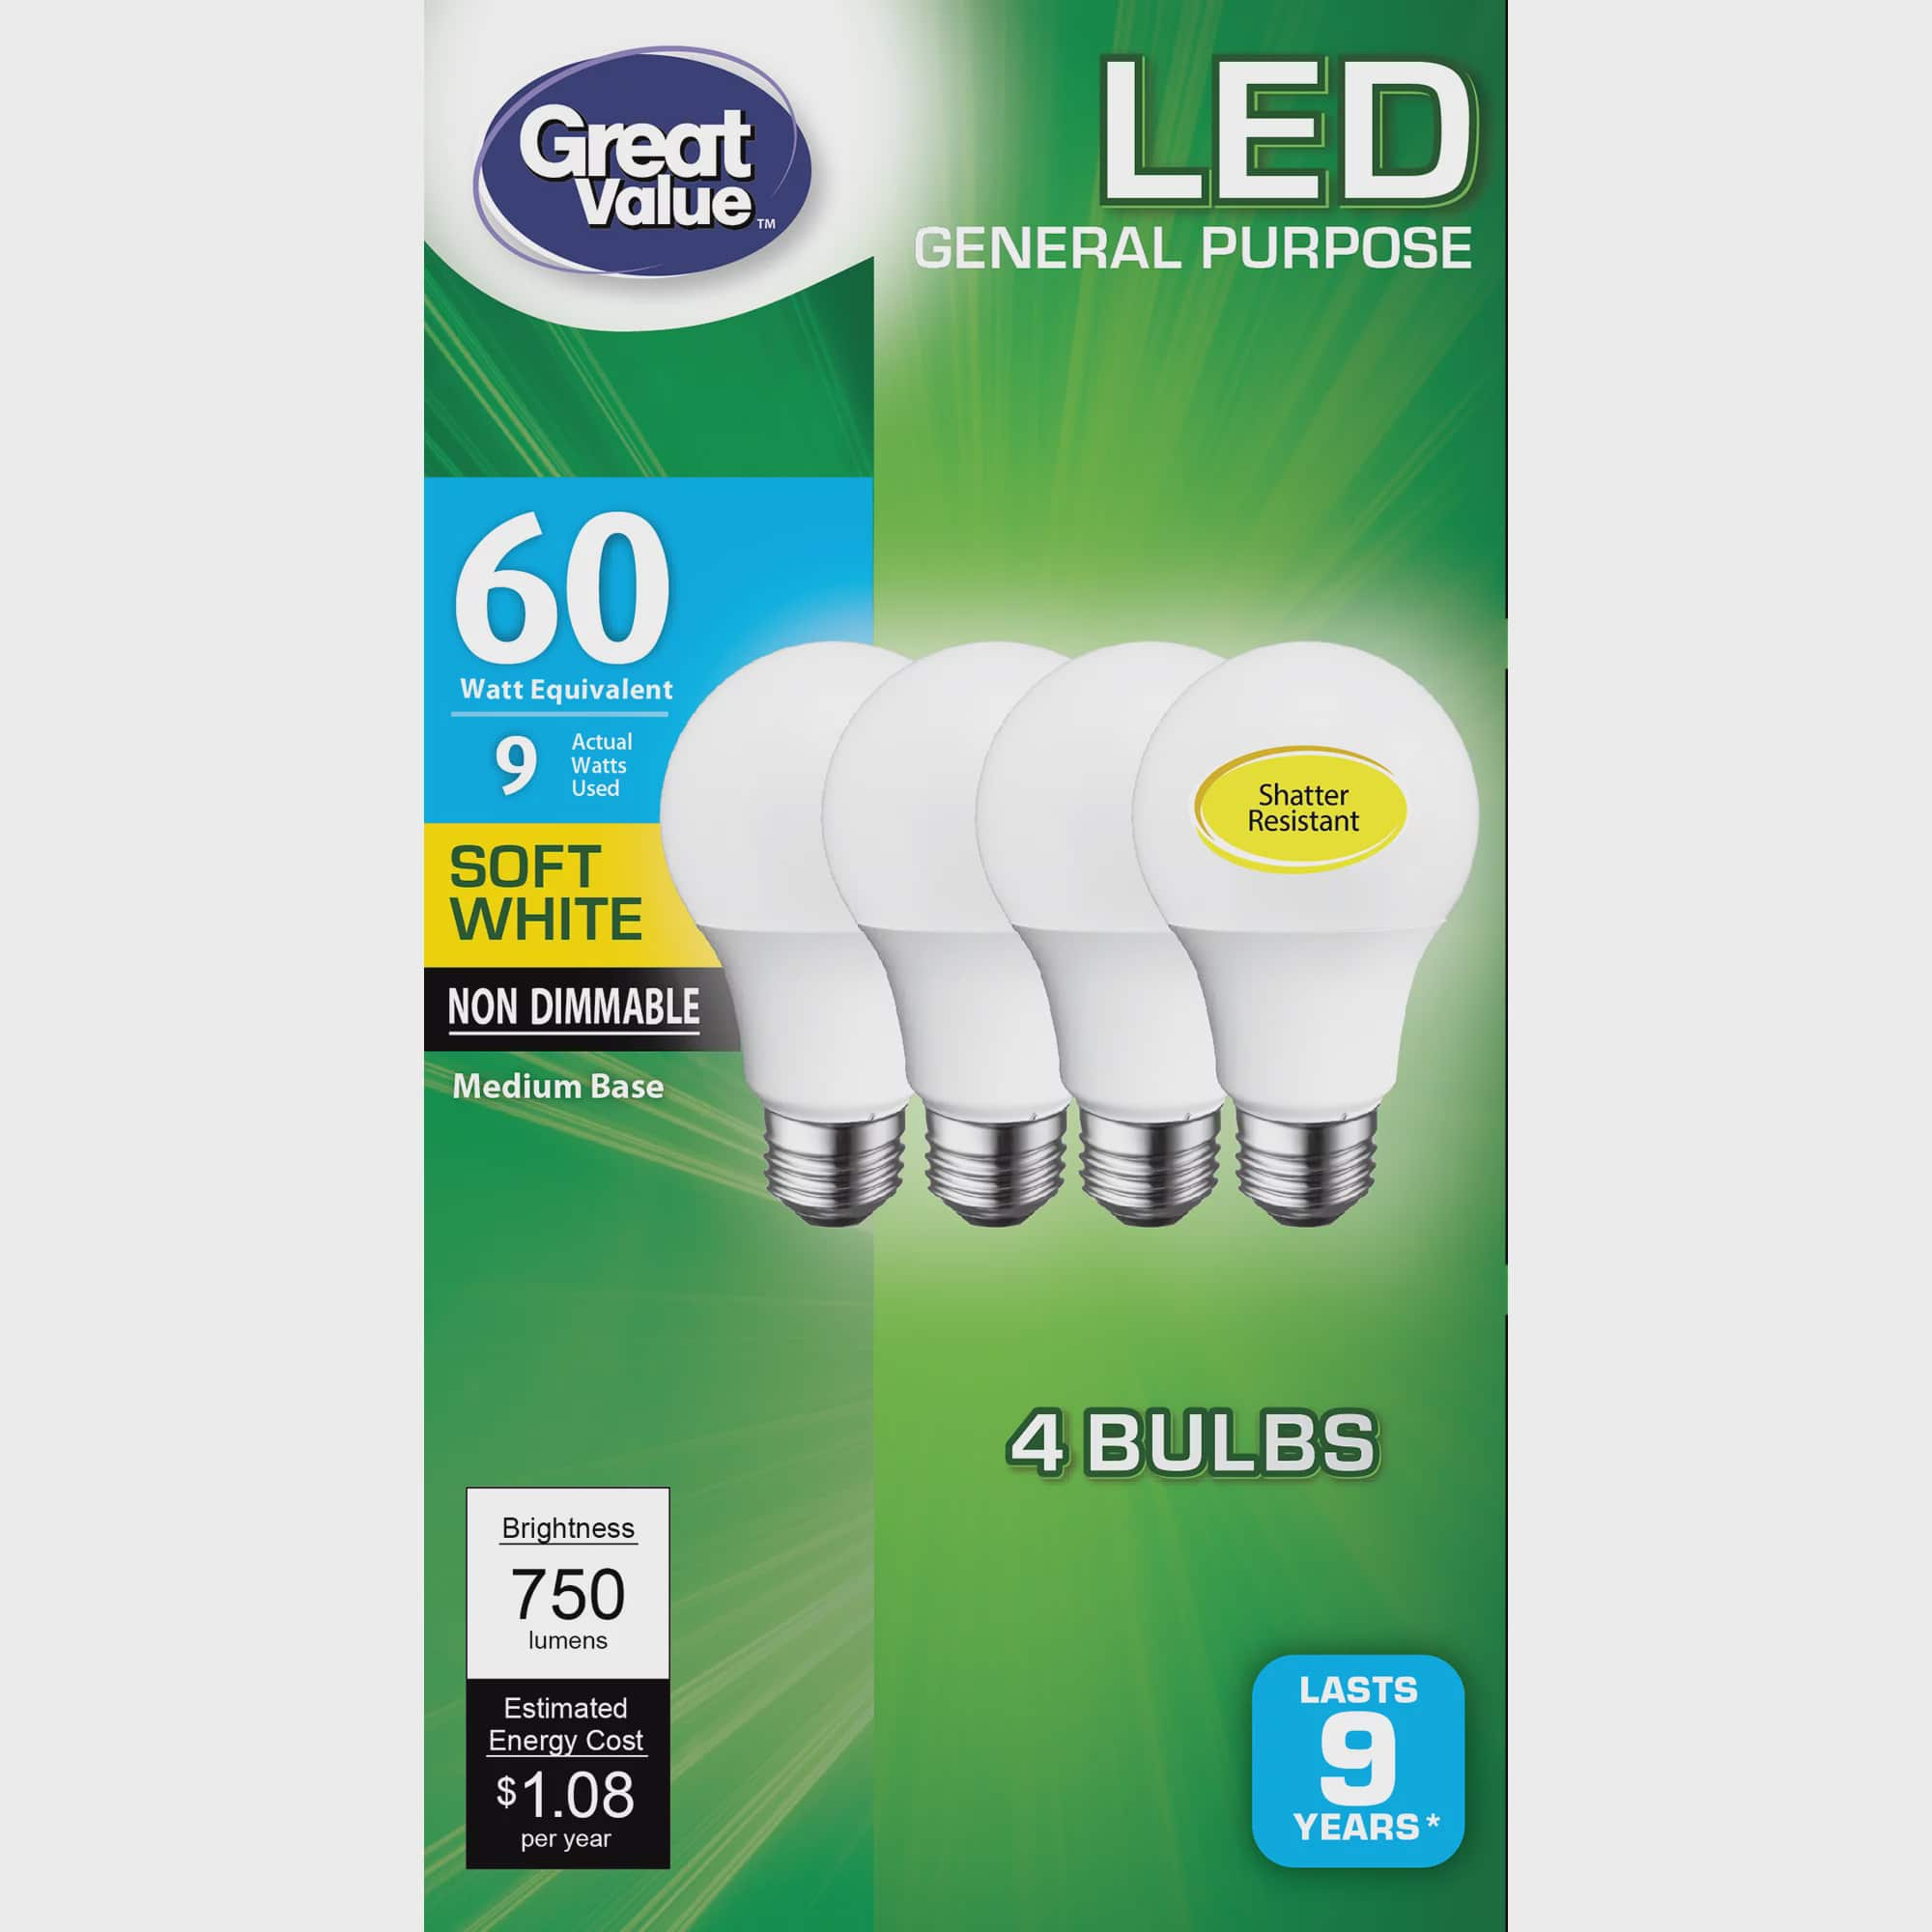 Great Value Led Light Bulb 9 Watts 60w Equivalent A19 General Purpose Lamp E26 Medium Base Non Dimmable Soft White 4 Pack Walmart Com Walmart Com